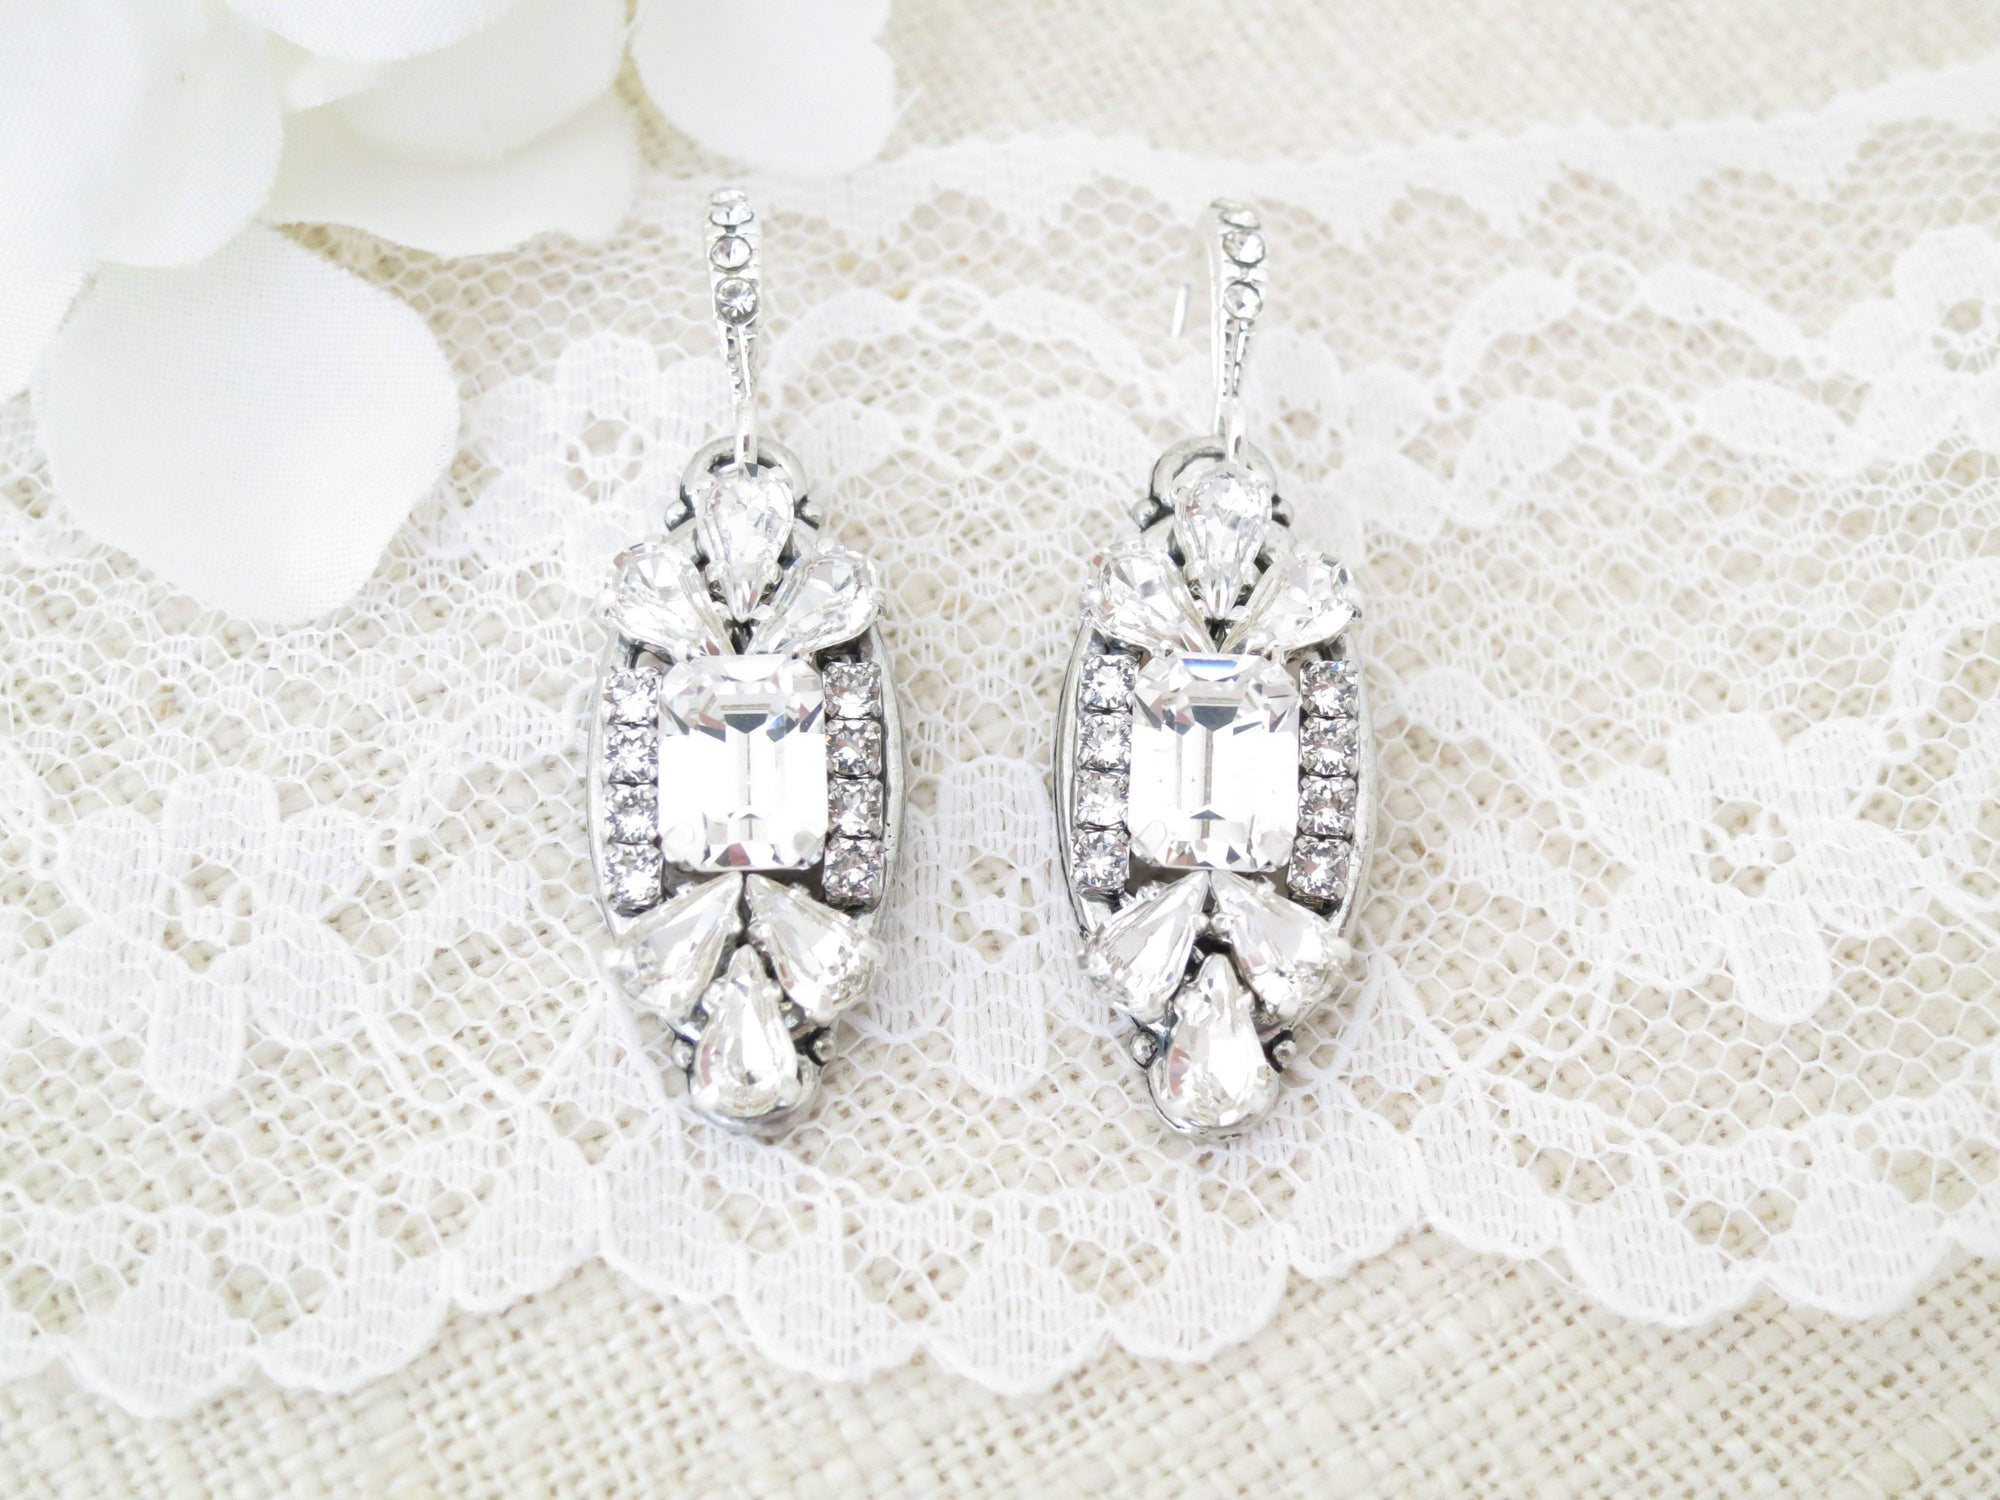 EVE:  Silver Art Deco Bridal Earrings - BlingBaddaBoom - Minimalist, Vintage, Modern Wedding and Bridal Jewelry